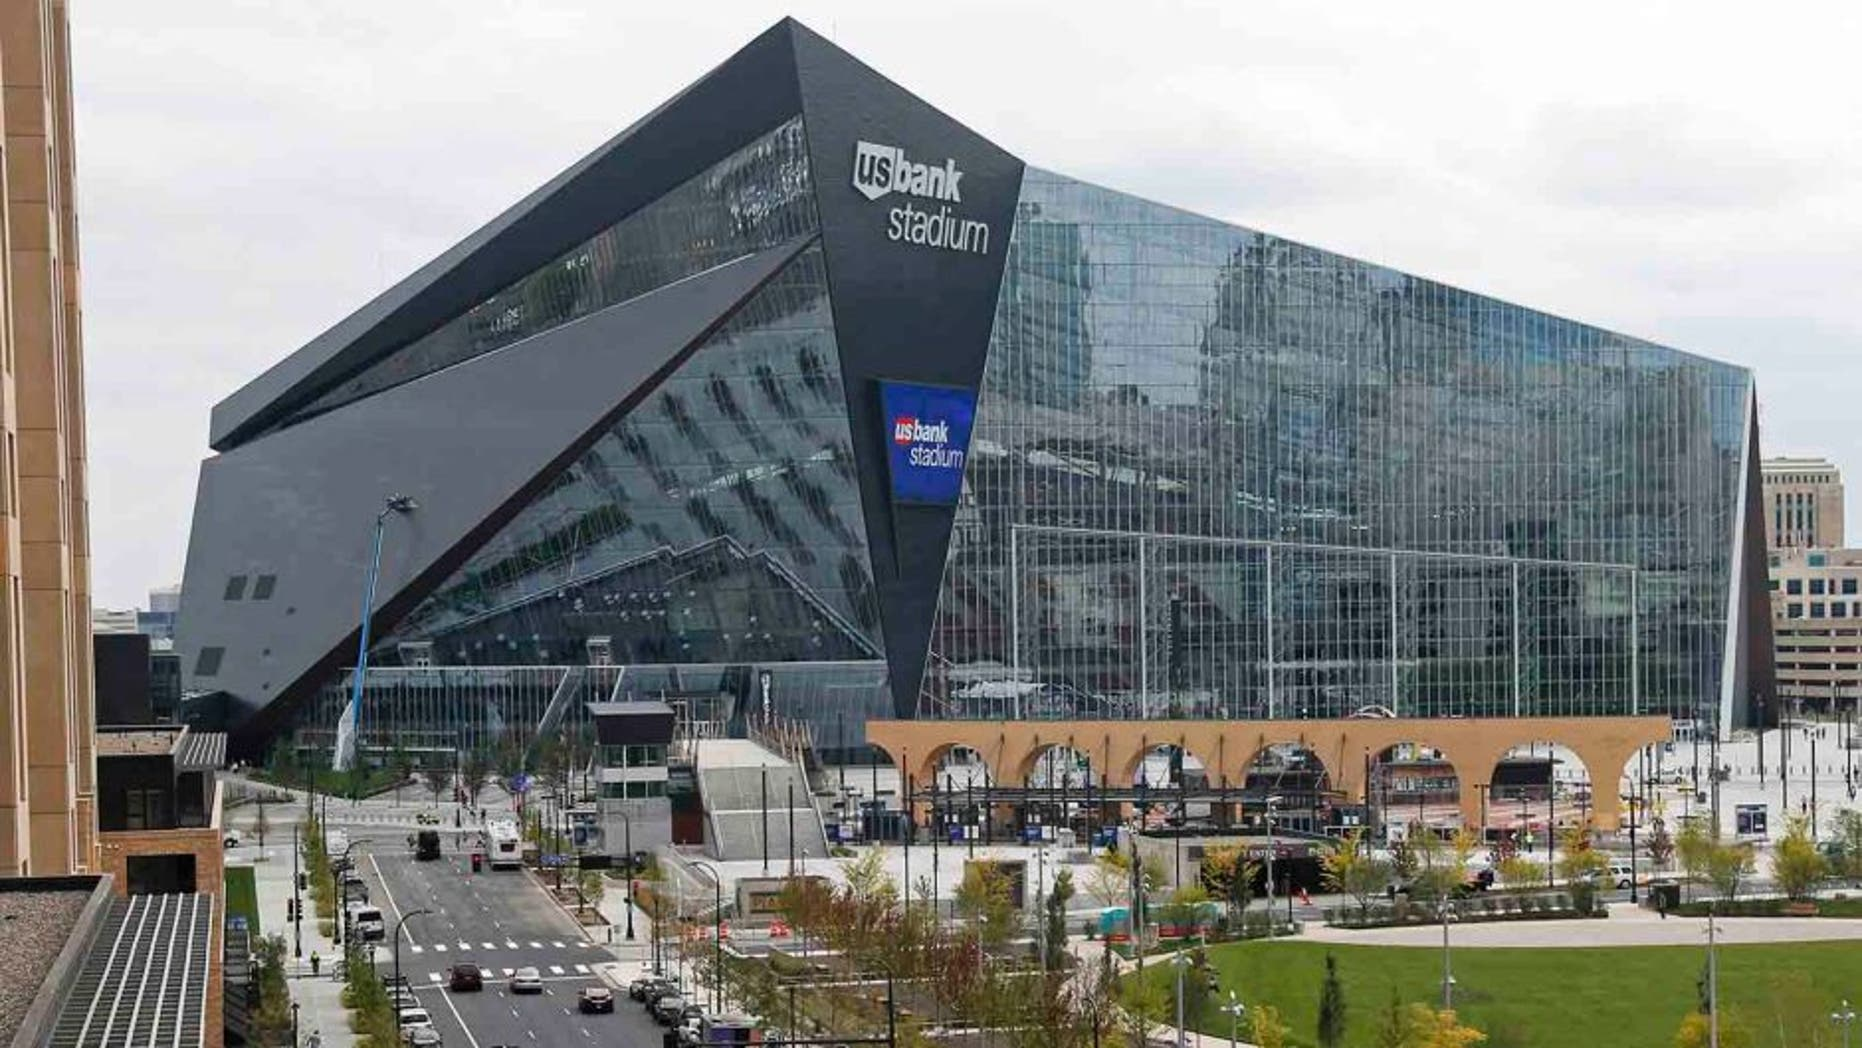 Exterior: US Bank Stadium To Spend $4.6M On Curtains To Block Out